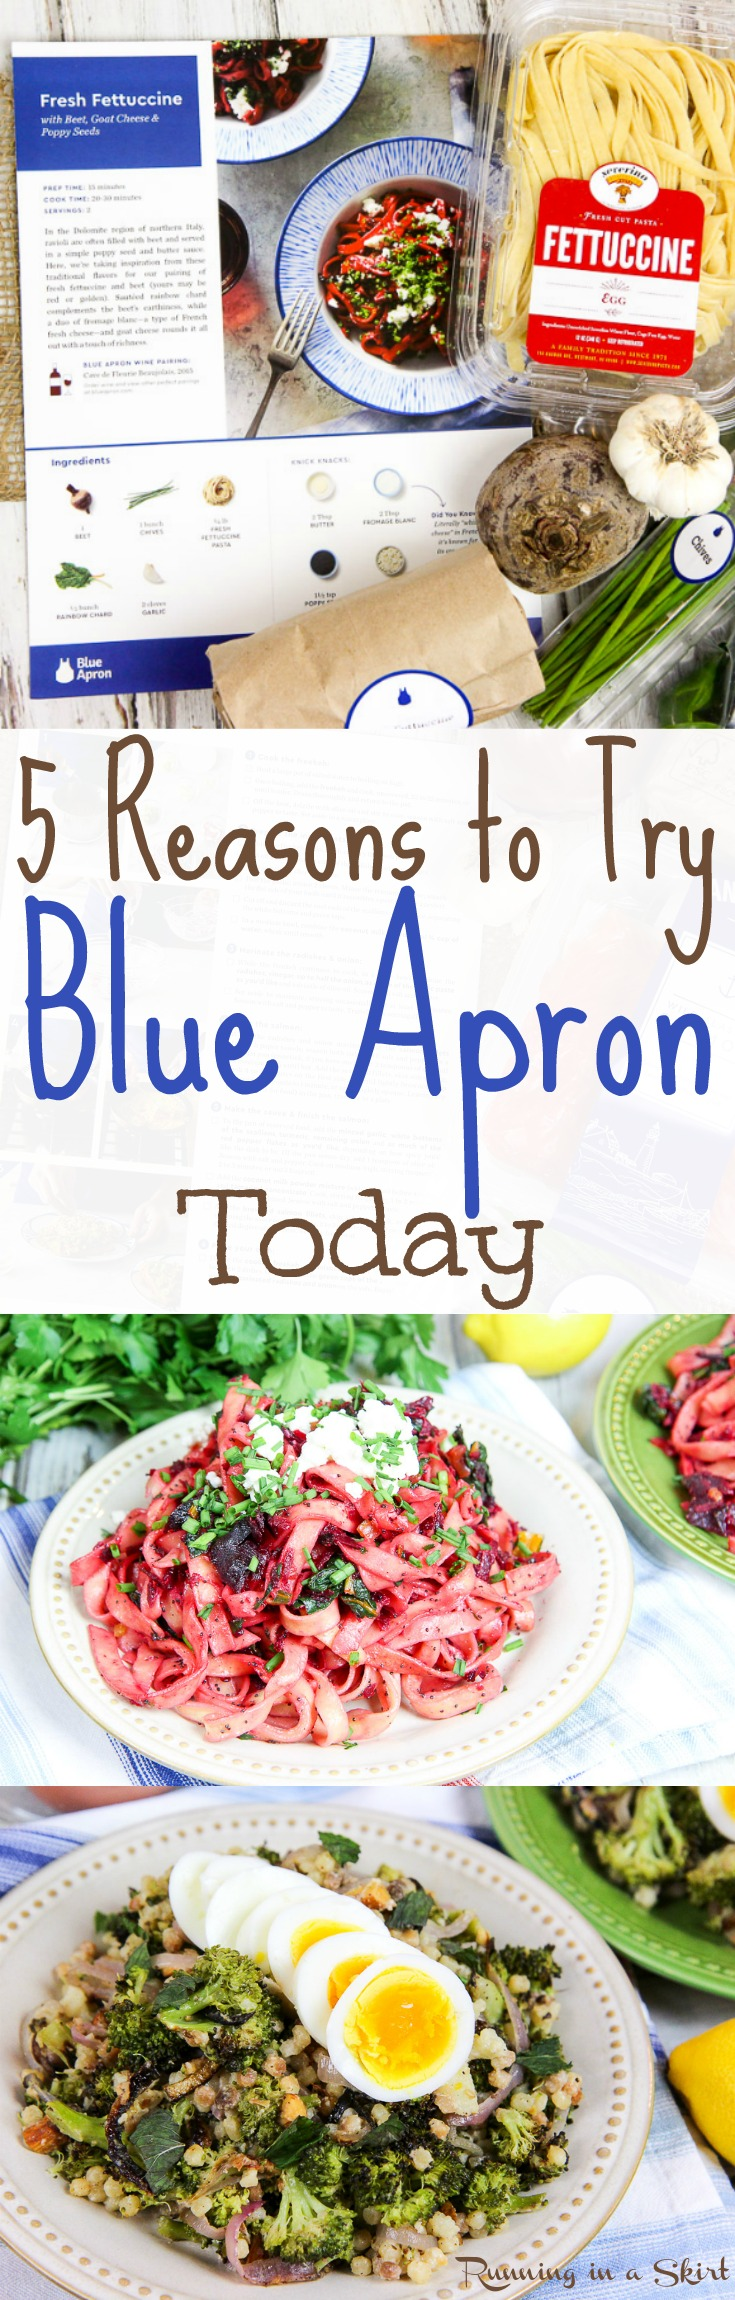 5 Reasons to Try Blue Apron Today - Why Blue Apron? -- Honest Reviews for Blue Apron / Running in a Skirt